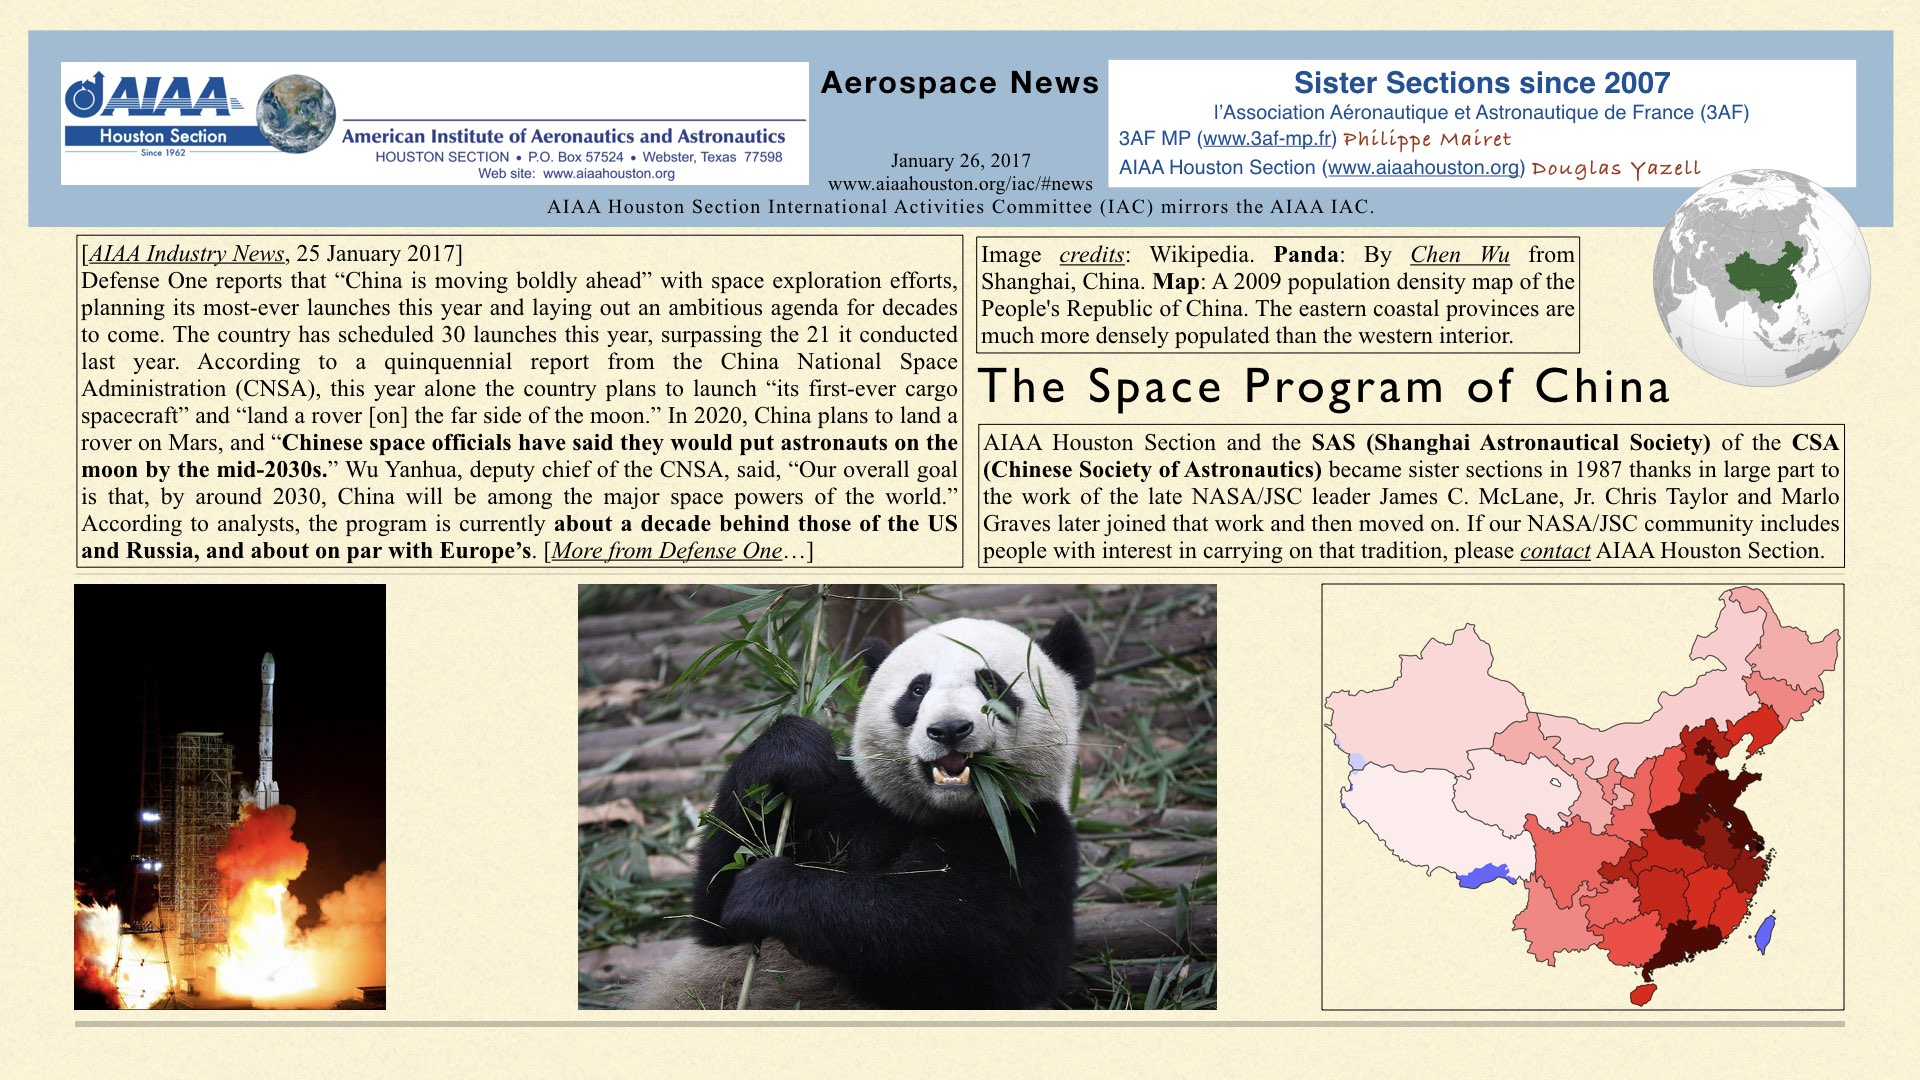 Above: The Space Program of China. (Click to zoom.)